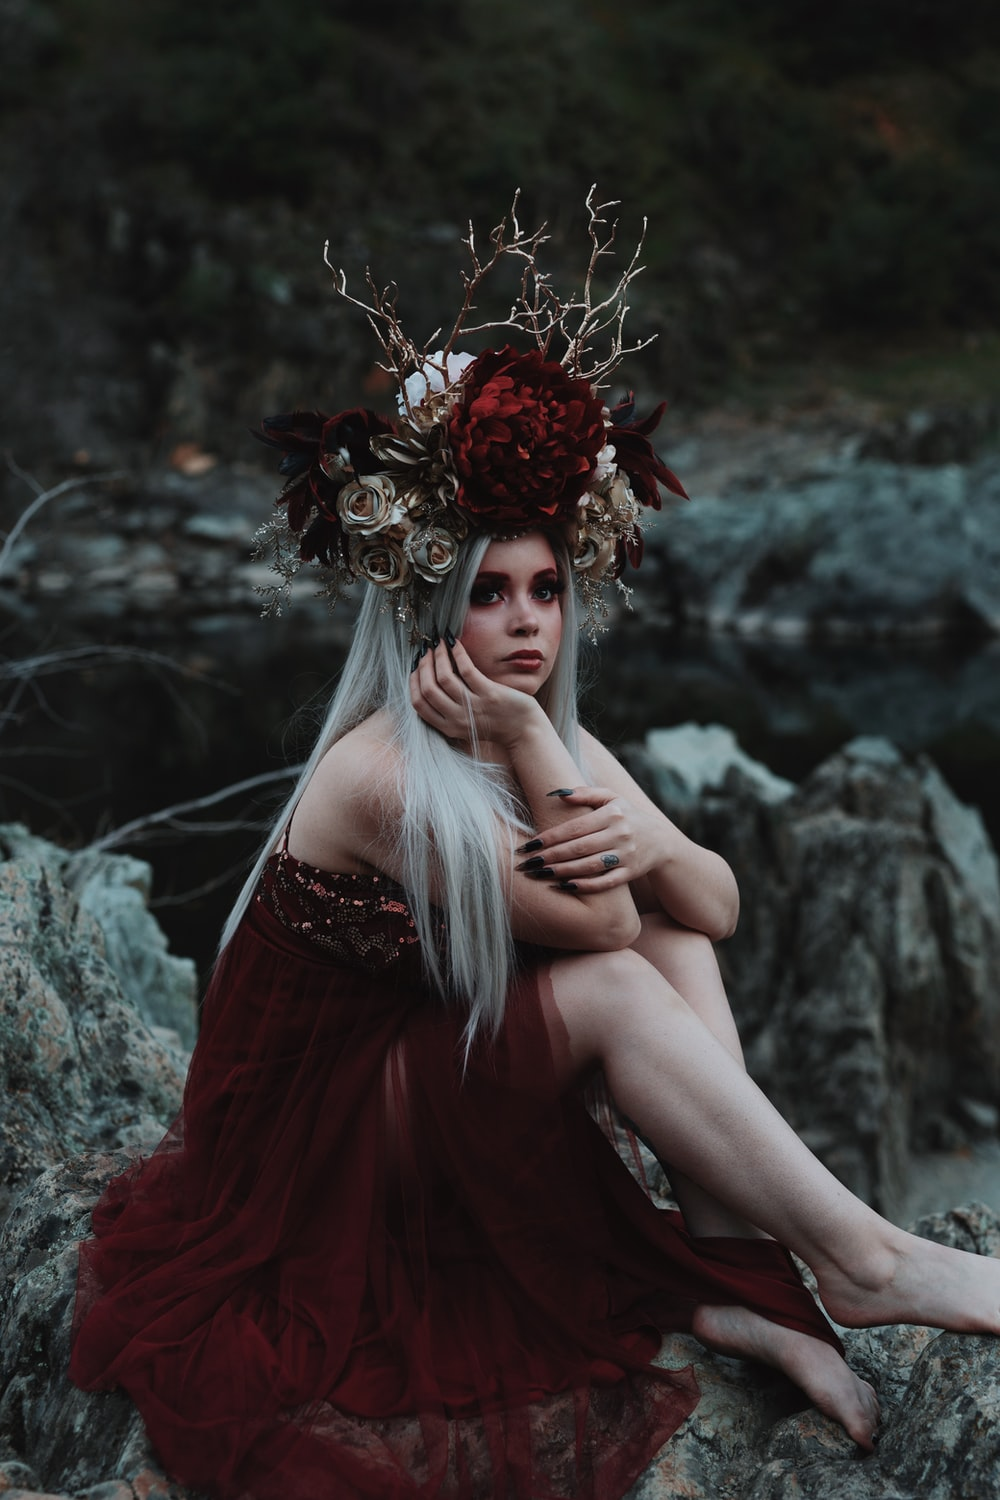 woman in red dress with red flowers on her head